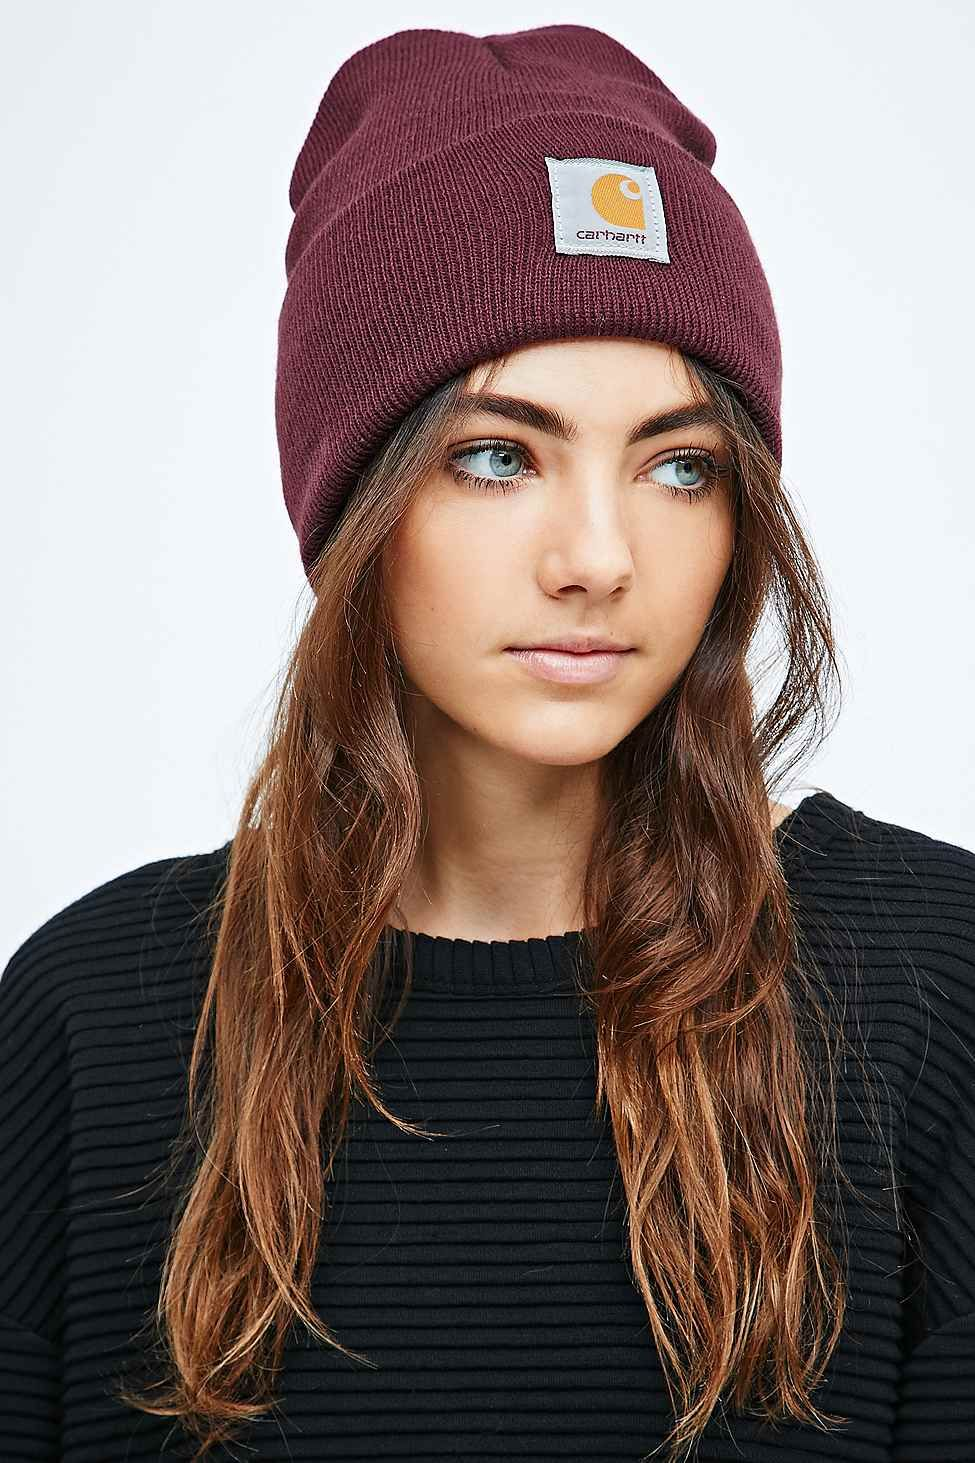 The maroon beanie matches perfectly with her bright eyes and light brunette  hair 245df62314c